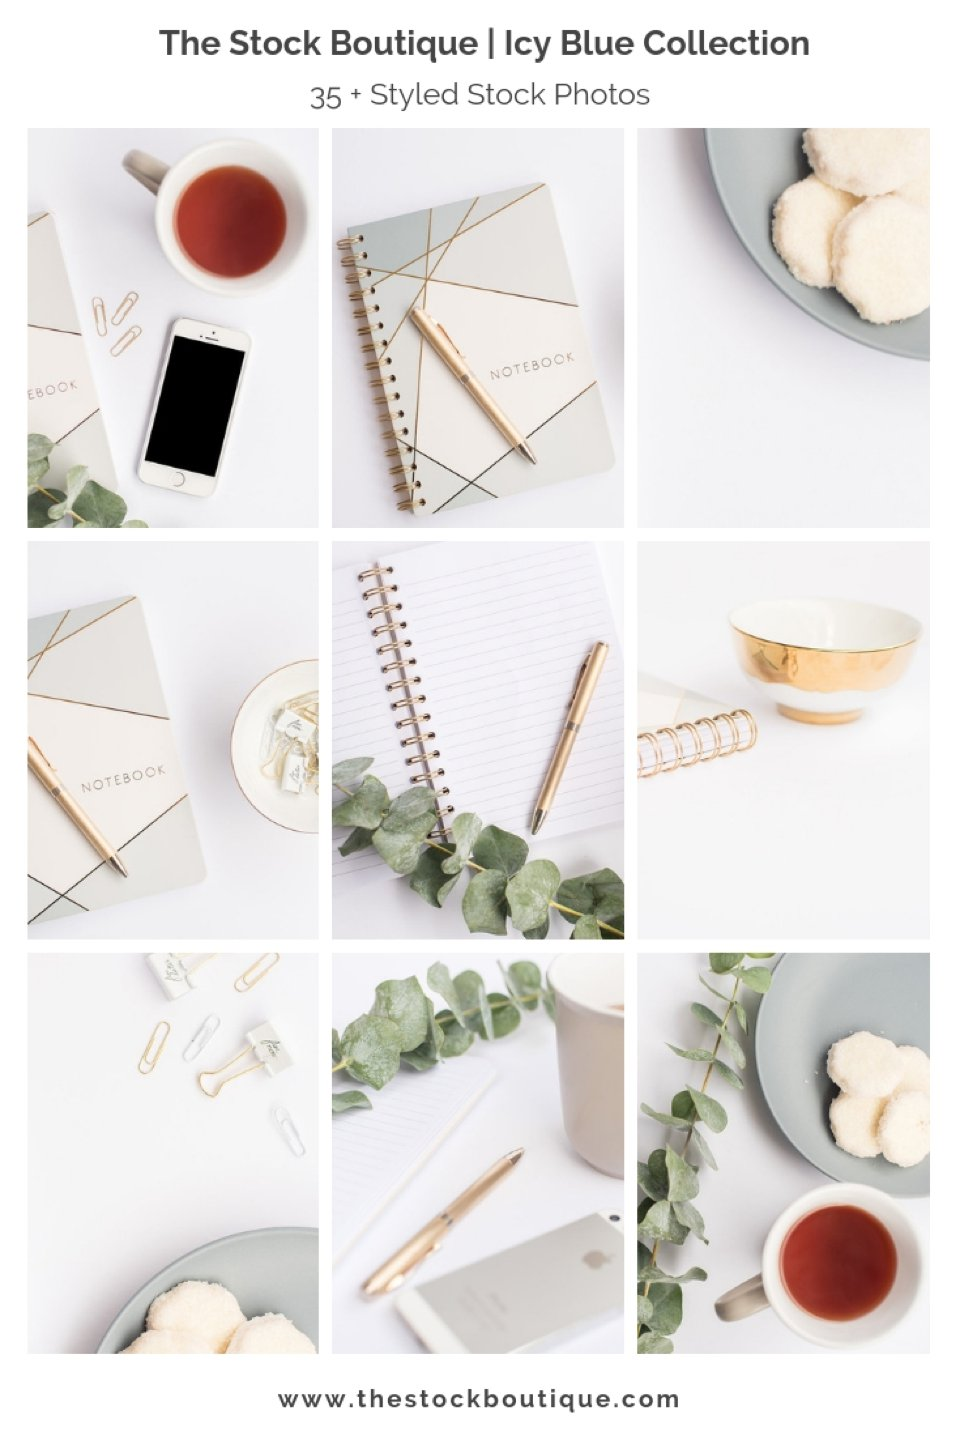 Styled stock photography for female entrepreneurs. www.thestockboutique.com #stockphotos #affordablestockphotos #flatlay #winter #brand #mockups #blogstockphotos #socialmediastock #femininestylestockphotography